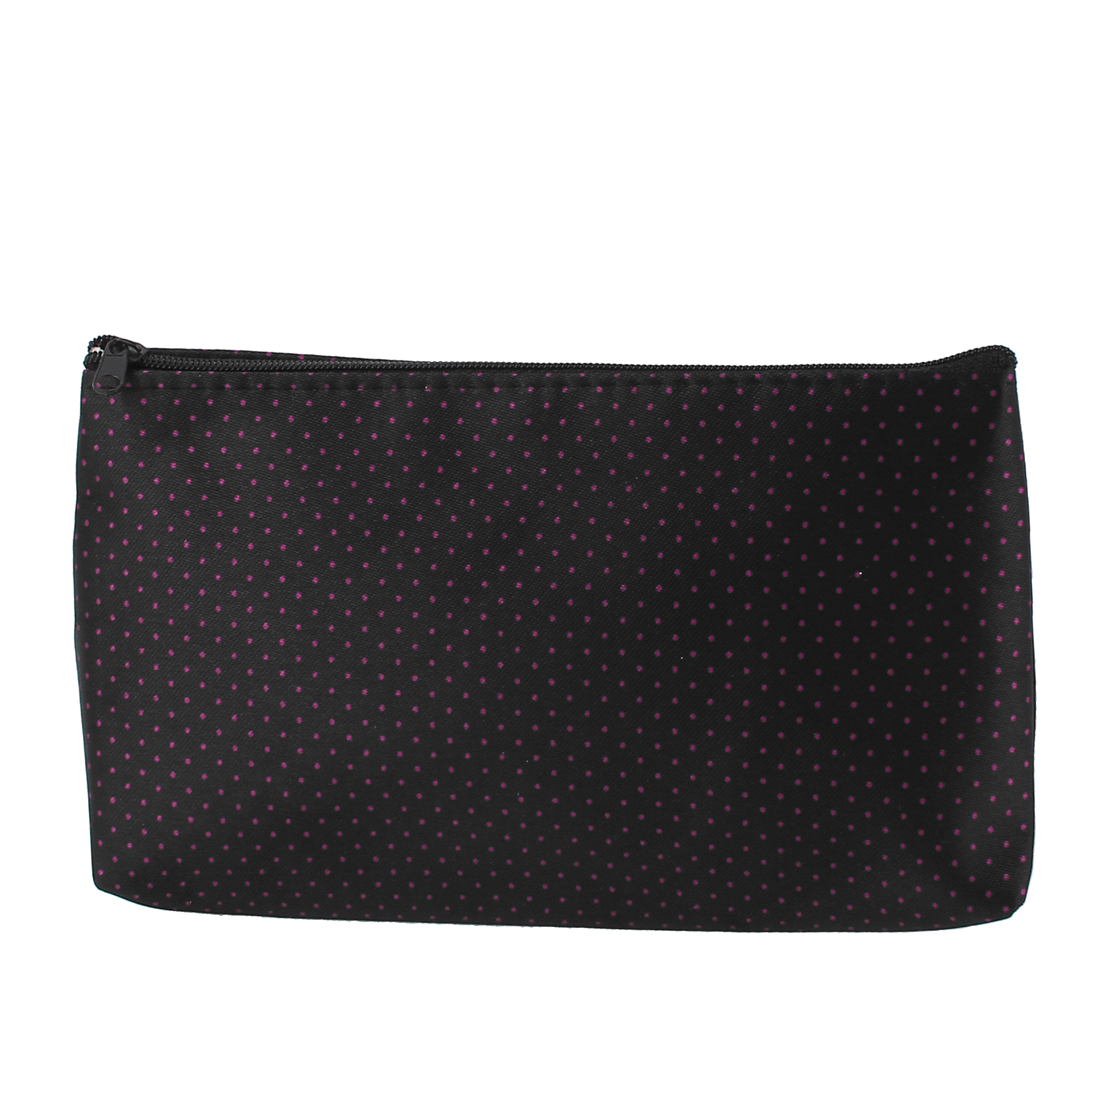 Lady Fuchsia Dots Printed Rectangular Makeup Holder Cosmetic Pouch Bag Black